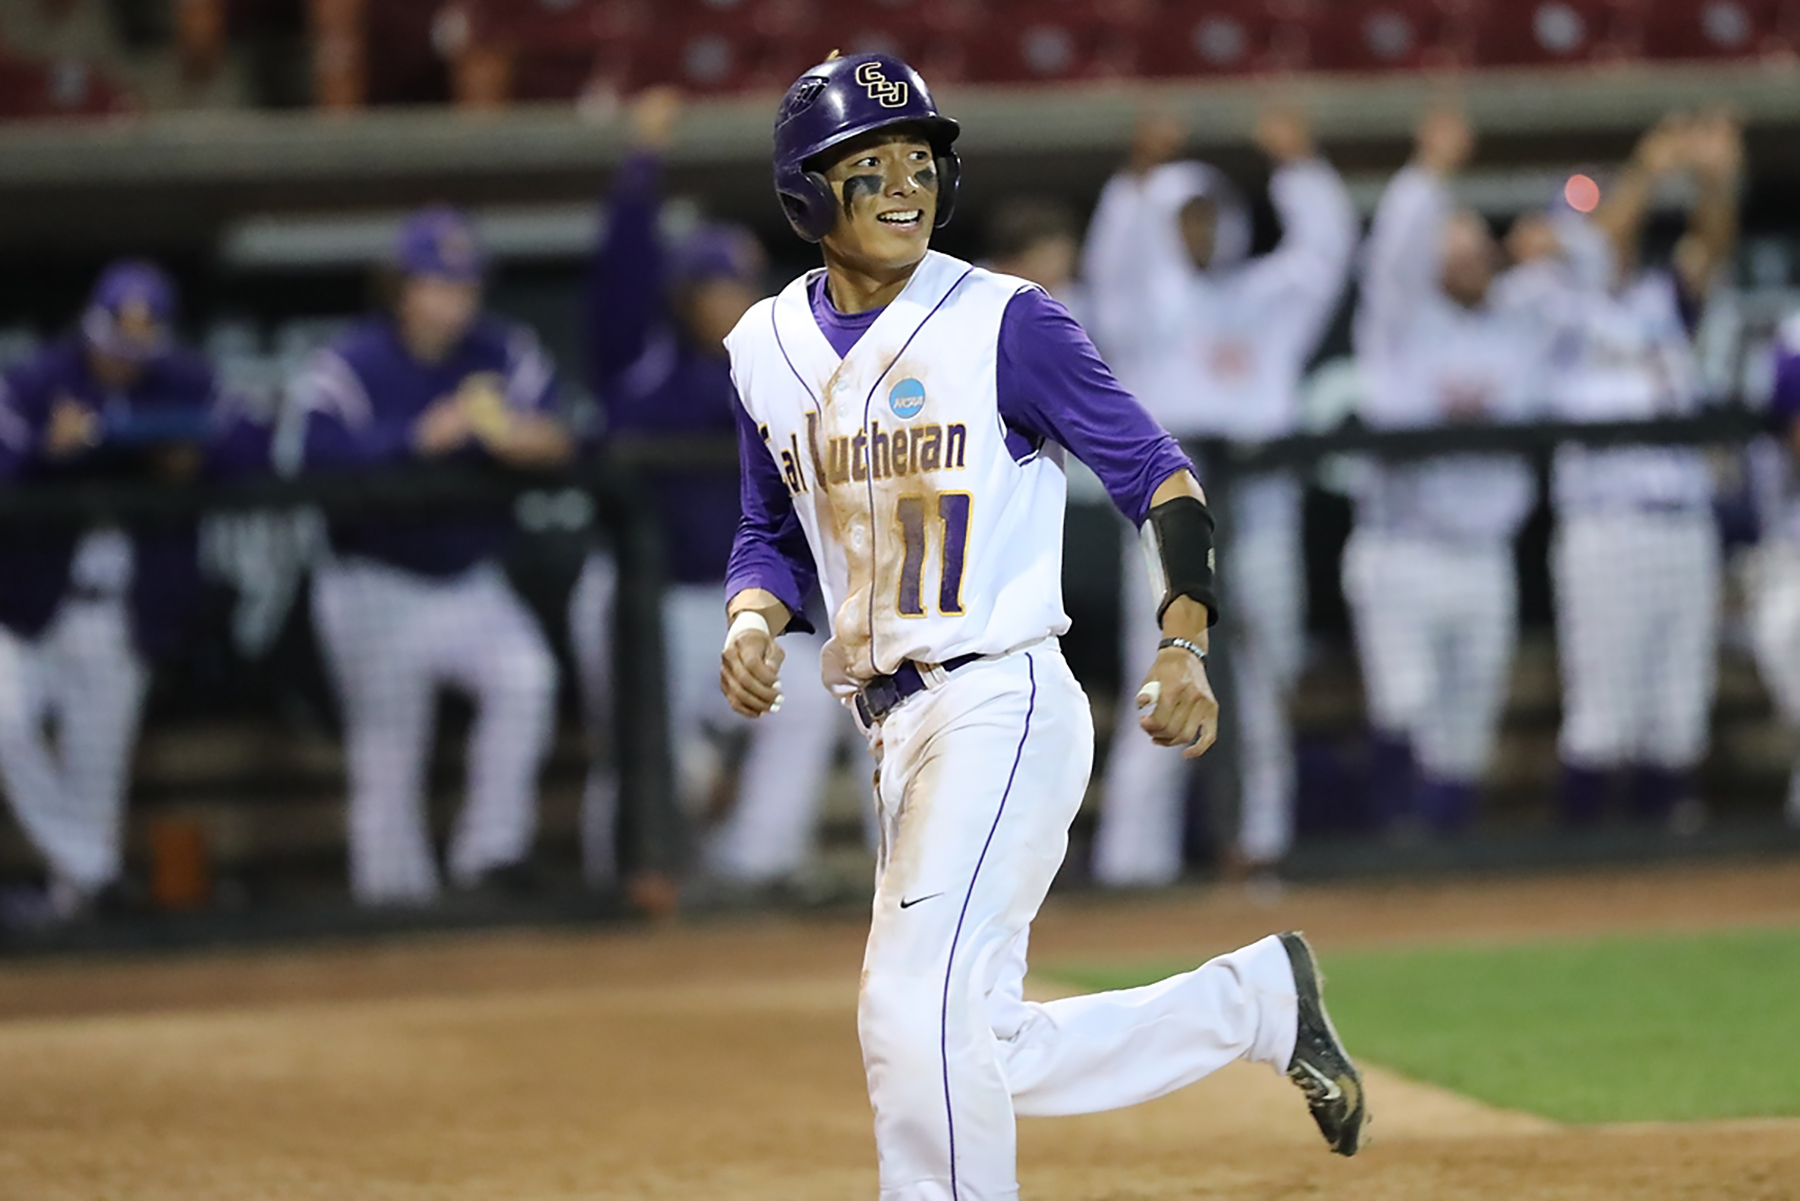 Cal Lutheran Opens World Series with 4-2 Win Over Wheaton (Mass)